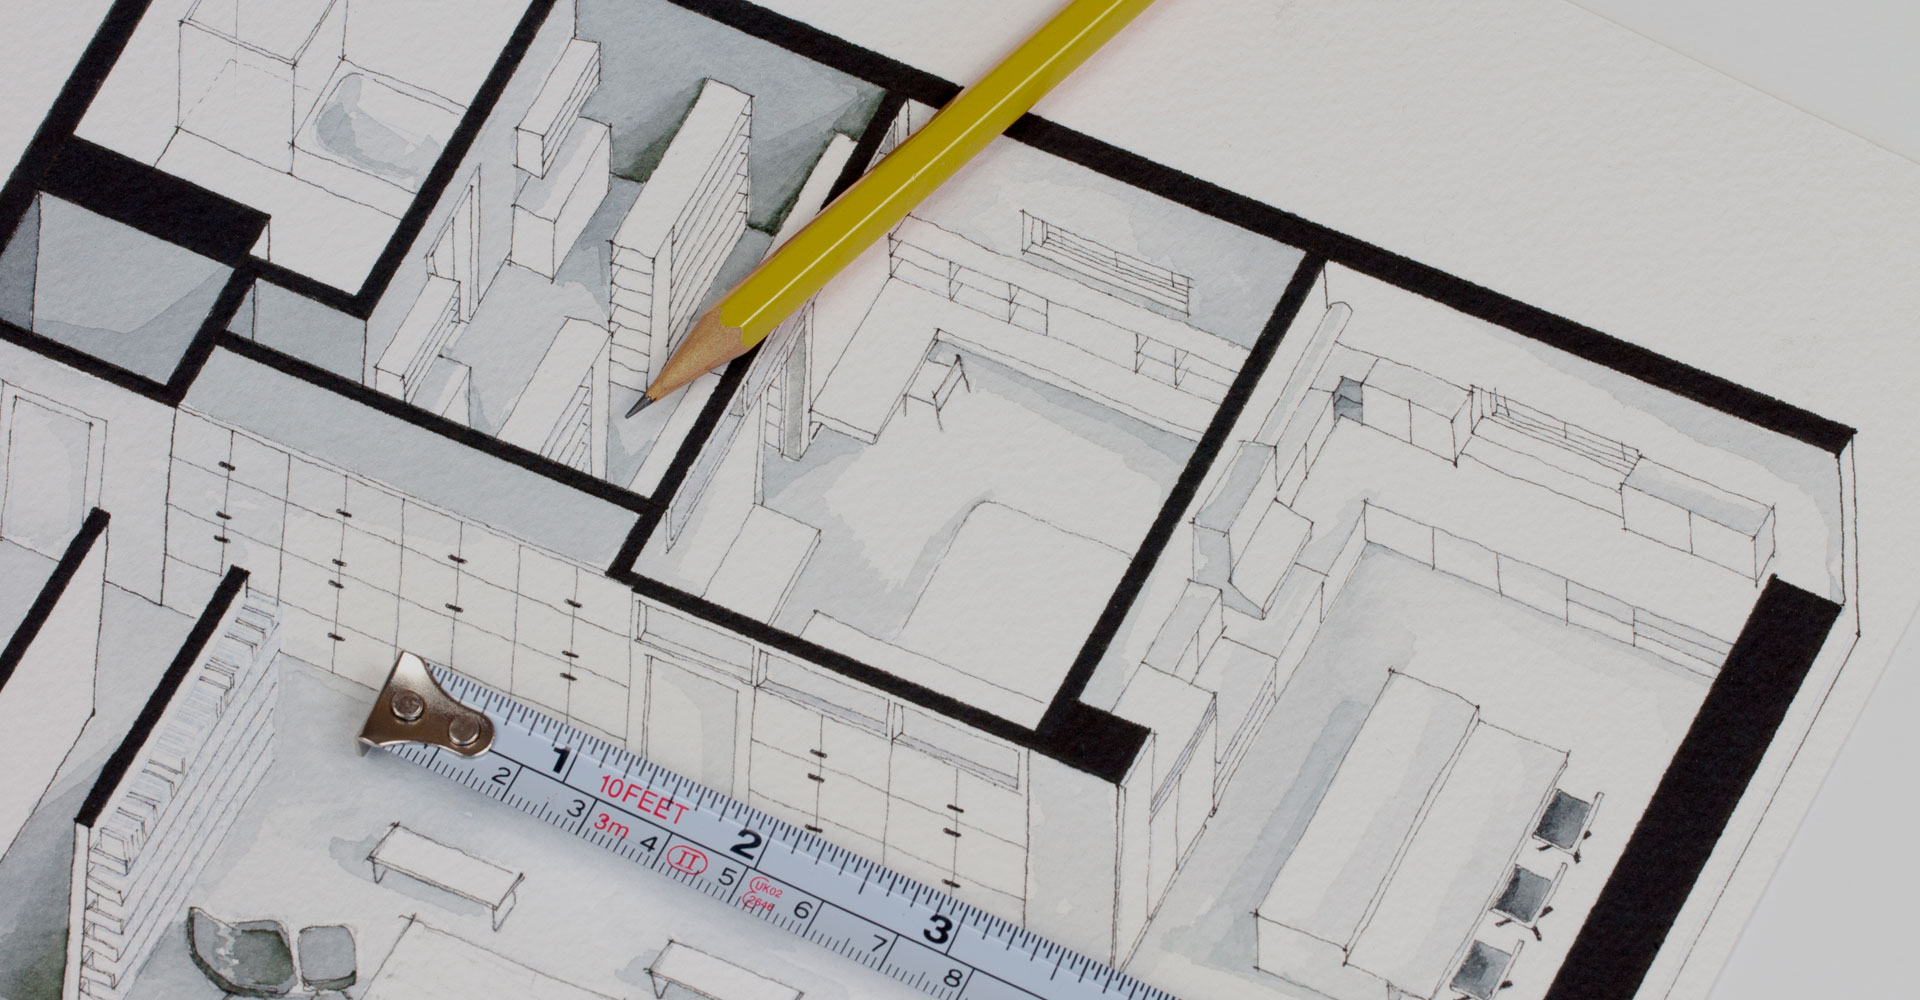 Projekto project management architect drawings